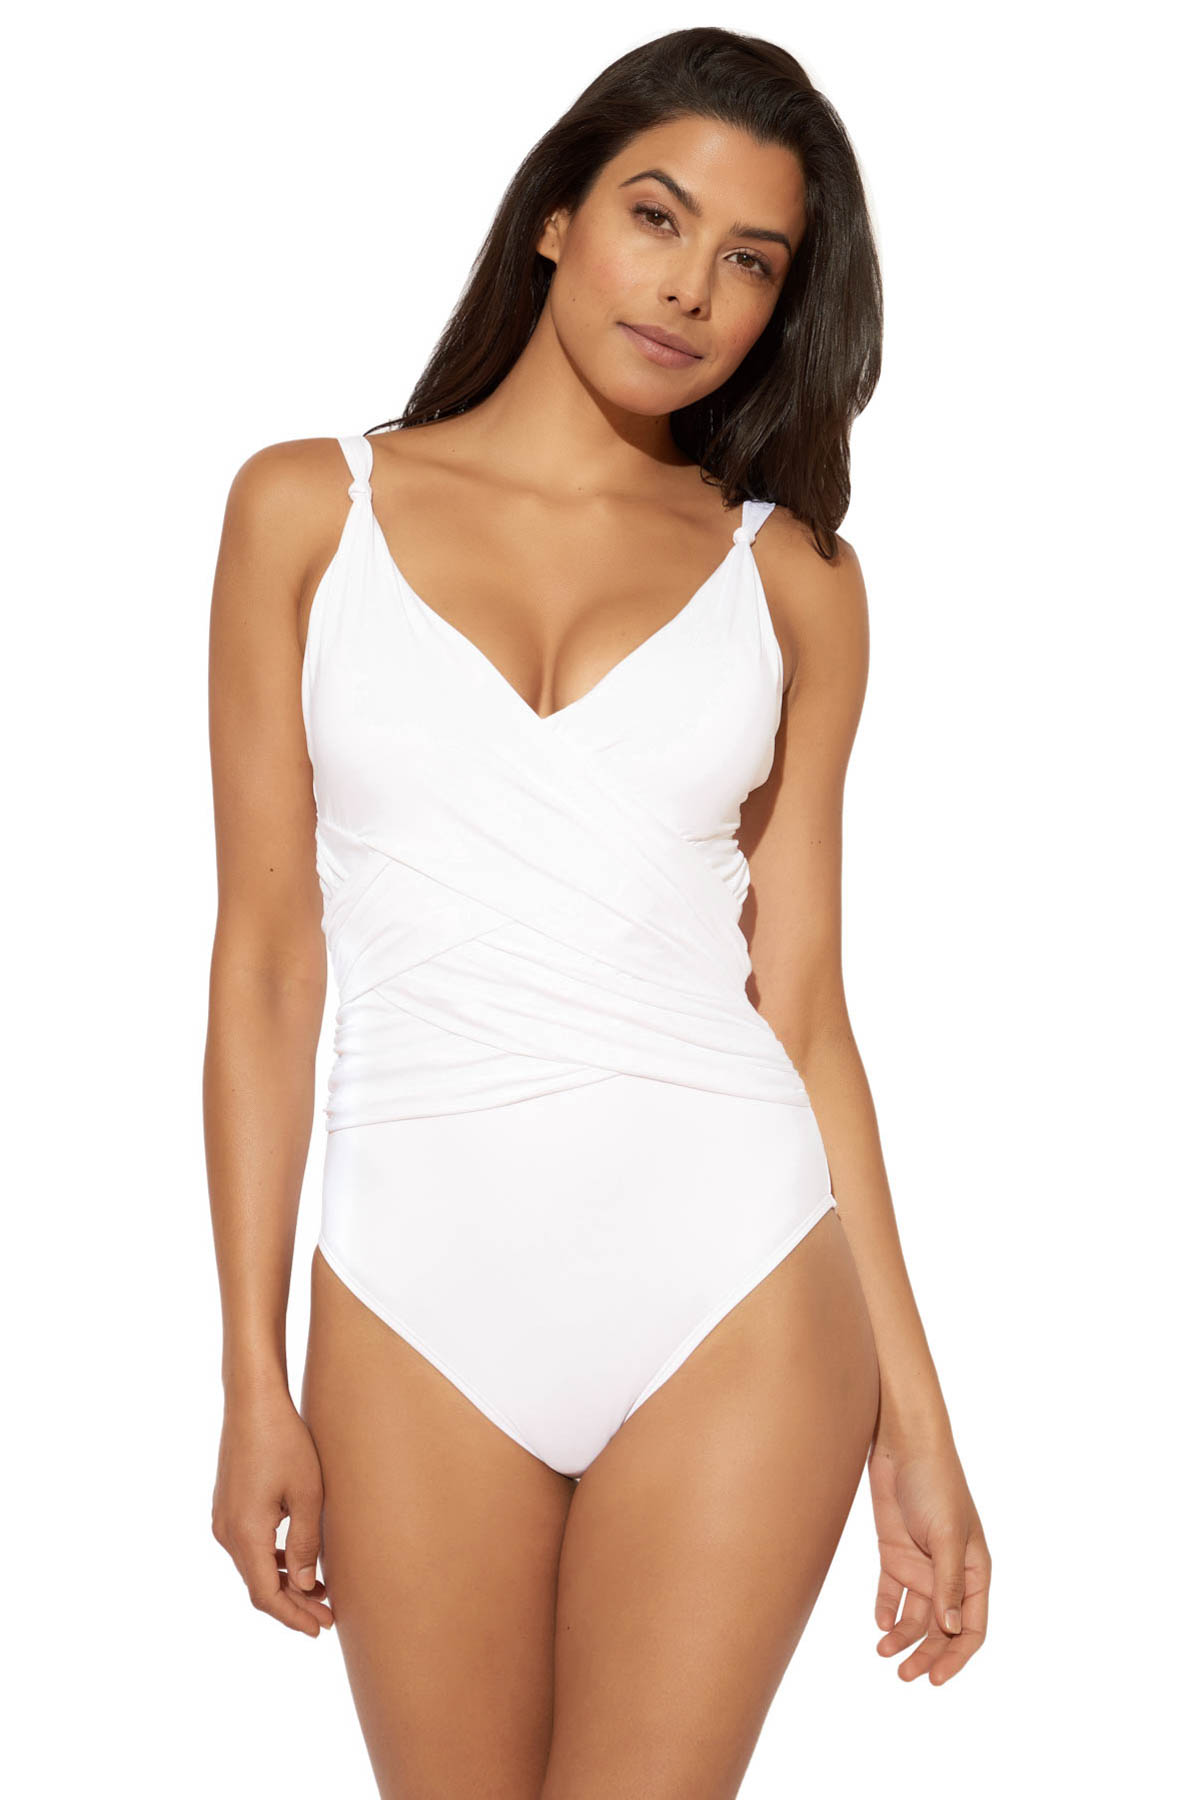 Lattice Over The Shoulder One Piece Swimsuit - White 1